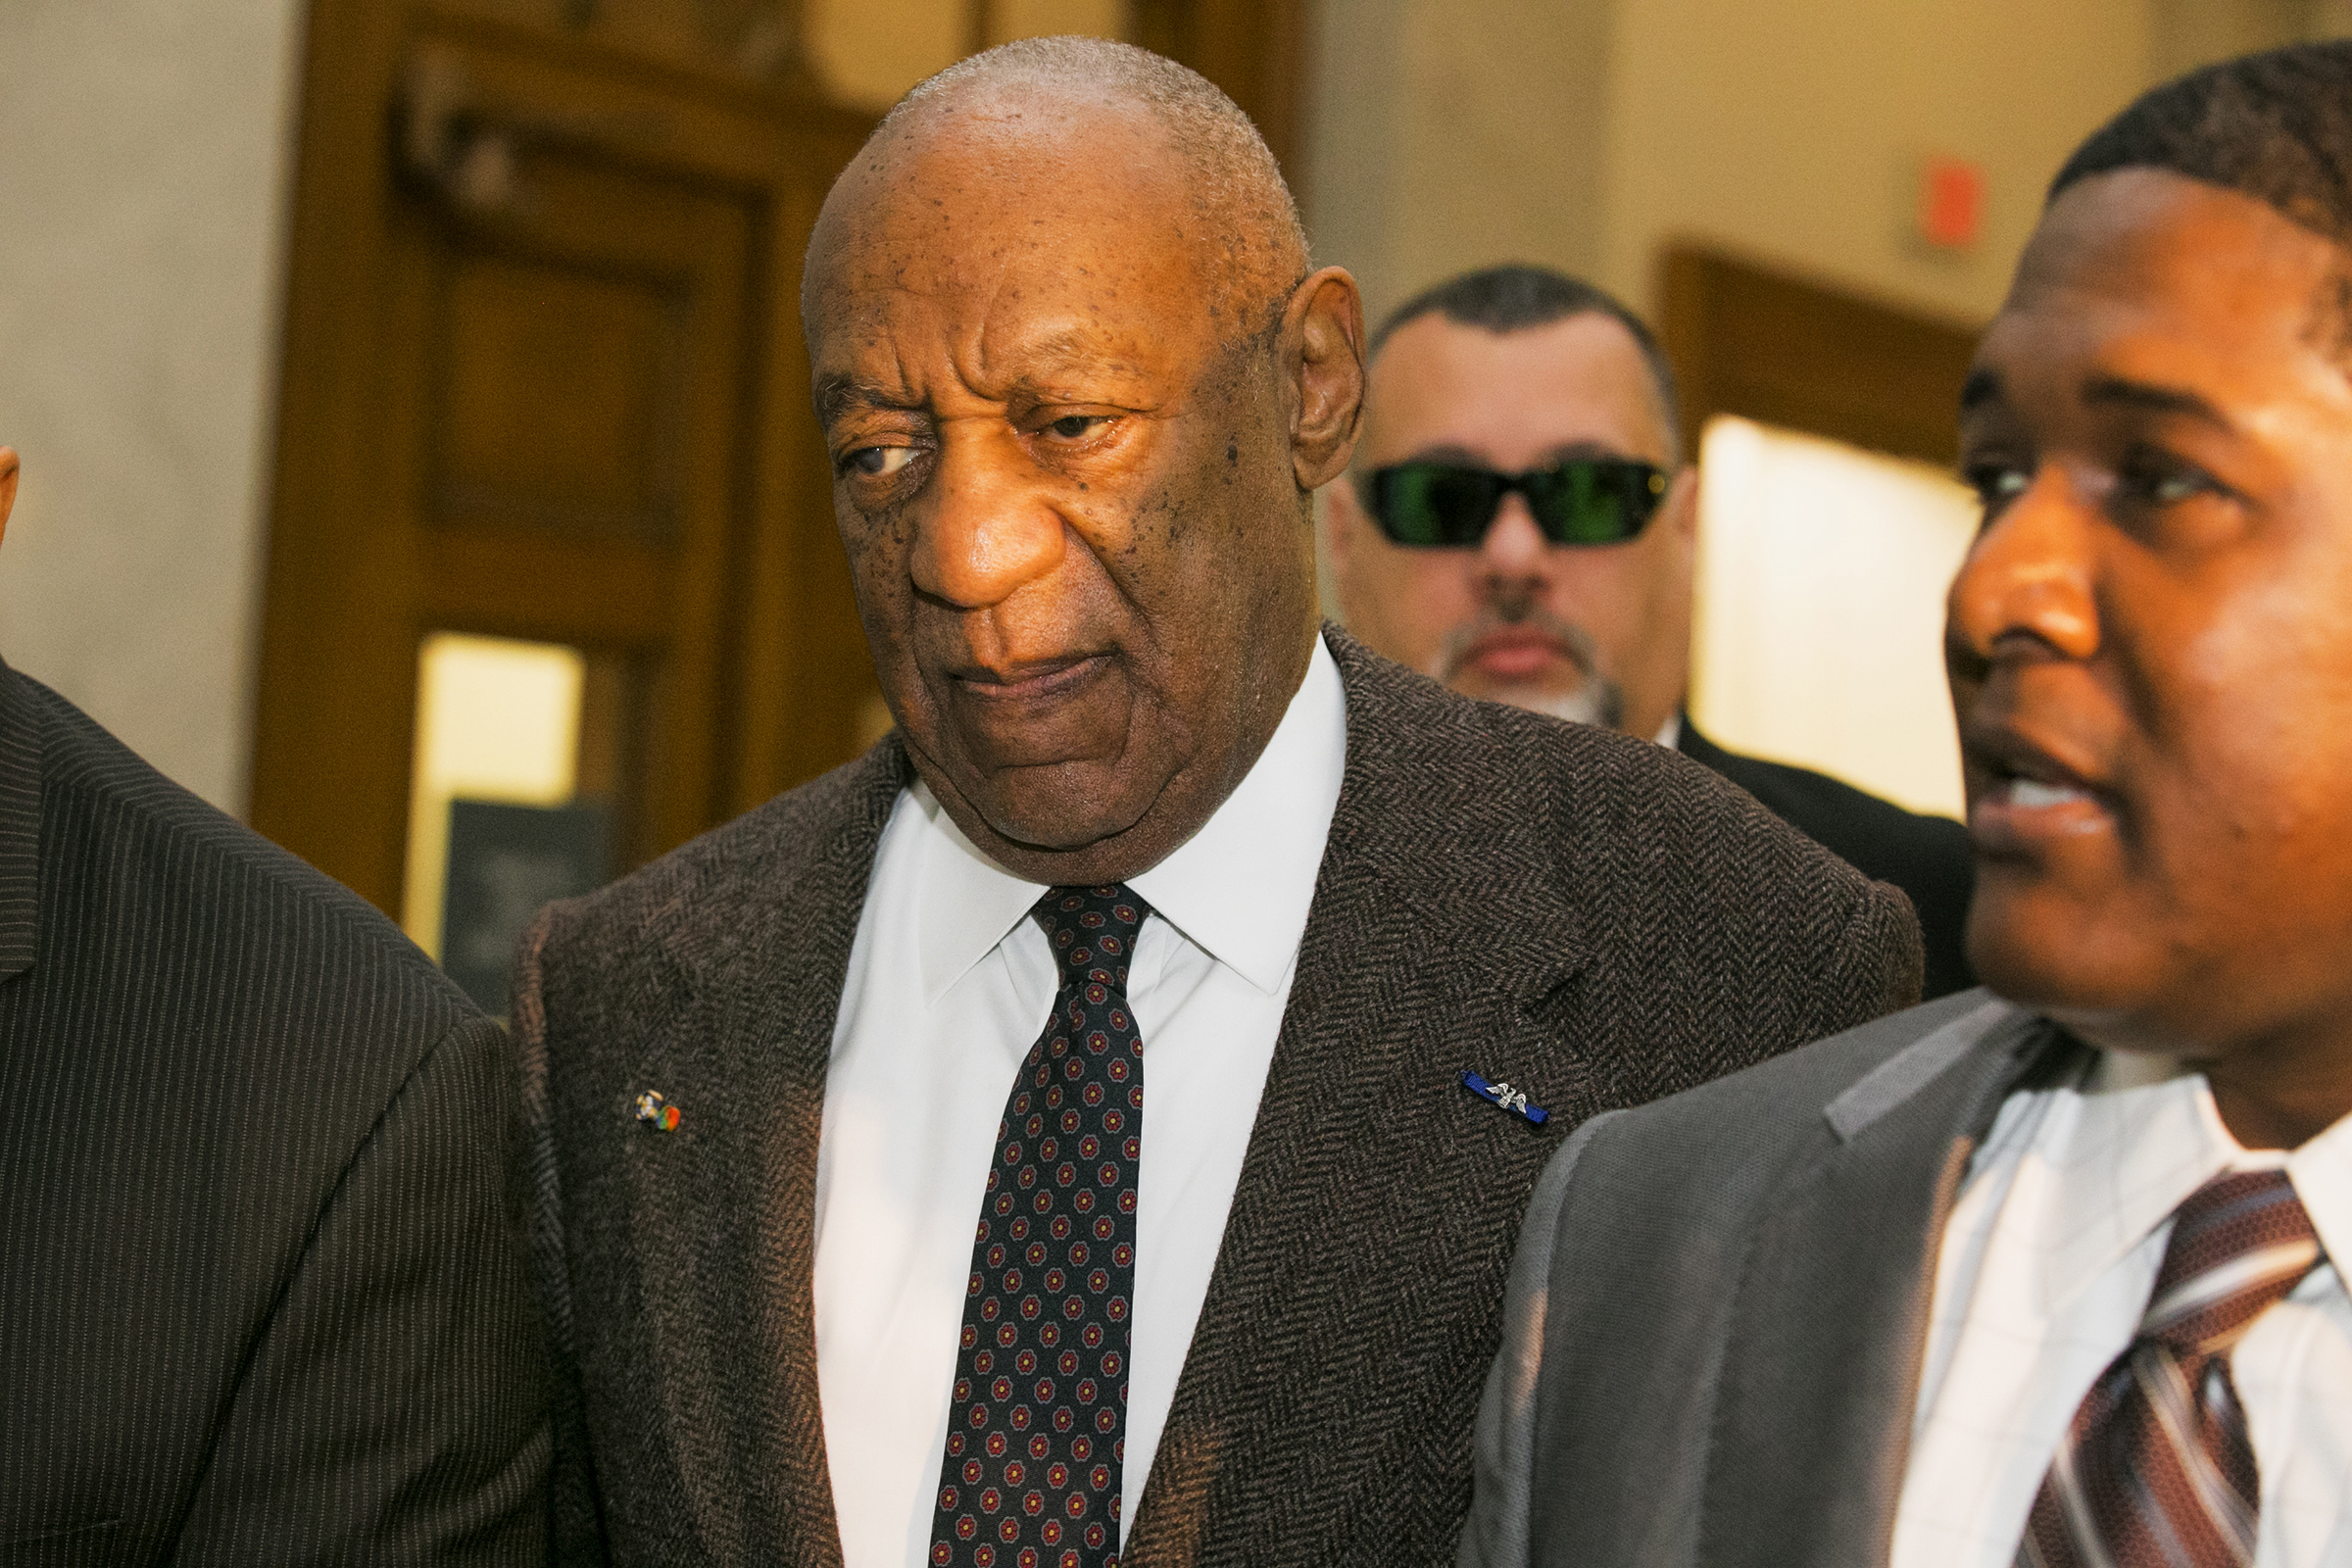 Actor and comedian Bill Cosby arrives for the second day of hearings at the Montgomery County Courthouse in Norristown, Pa., Feb. 3, 2016